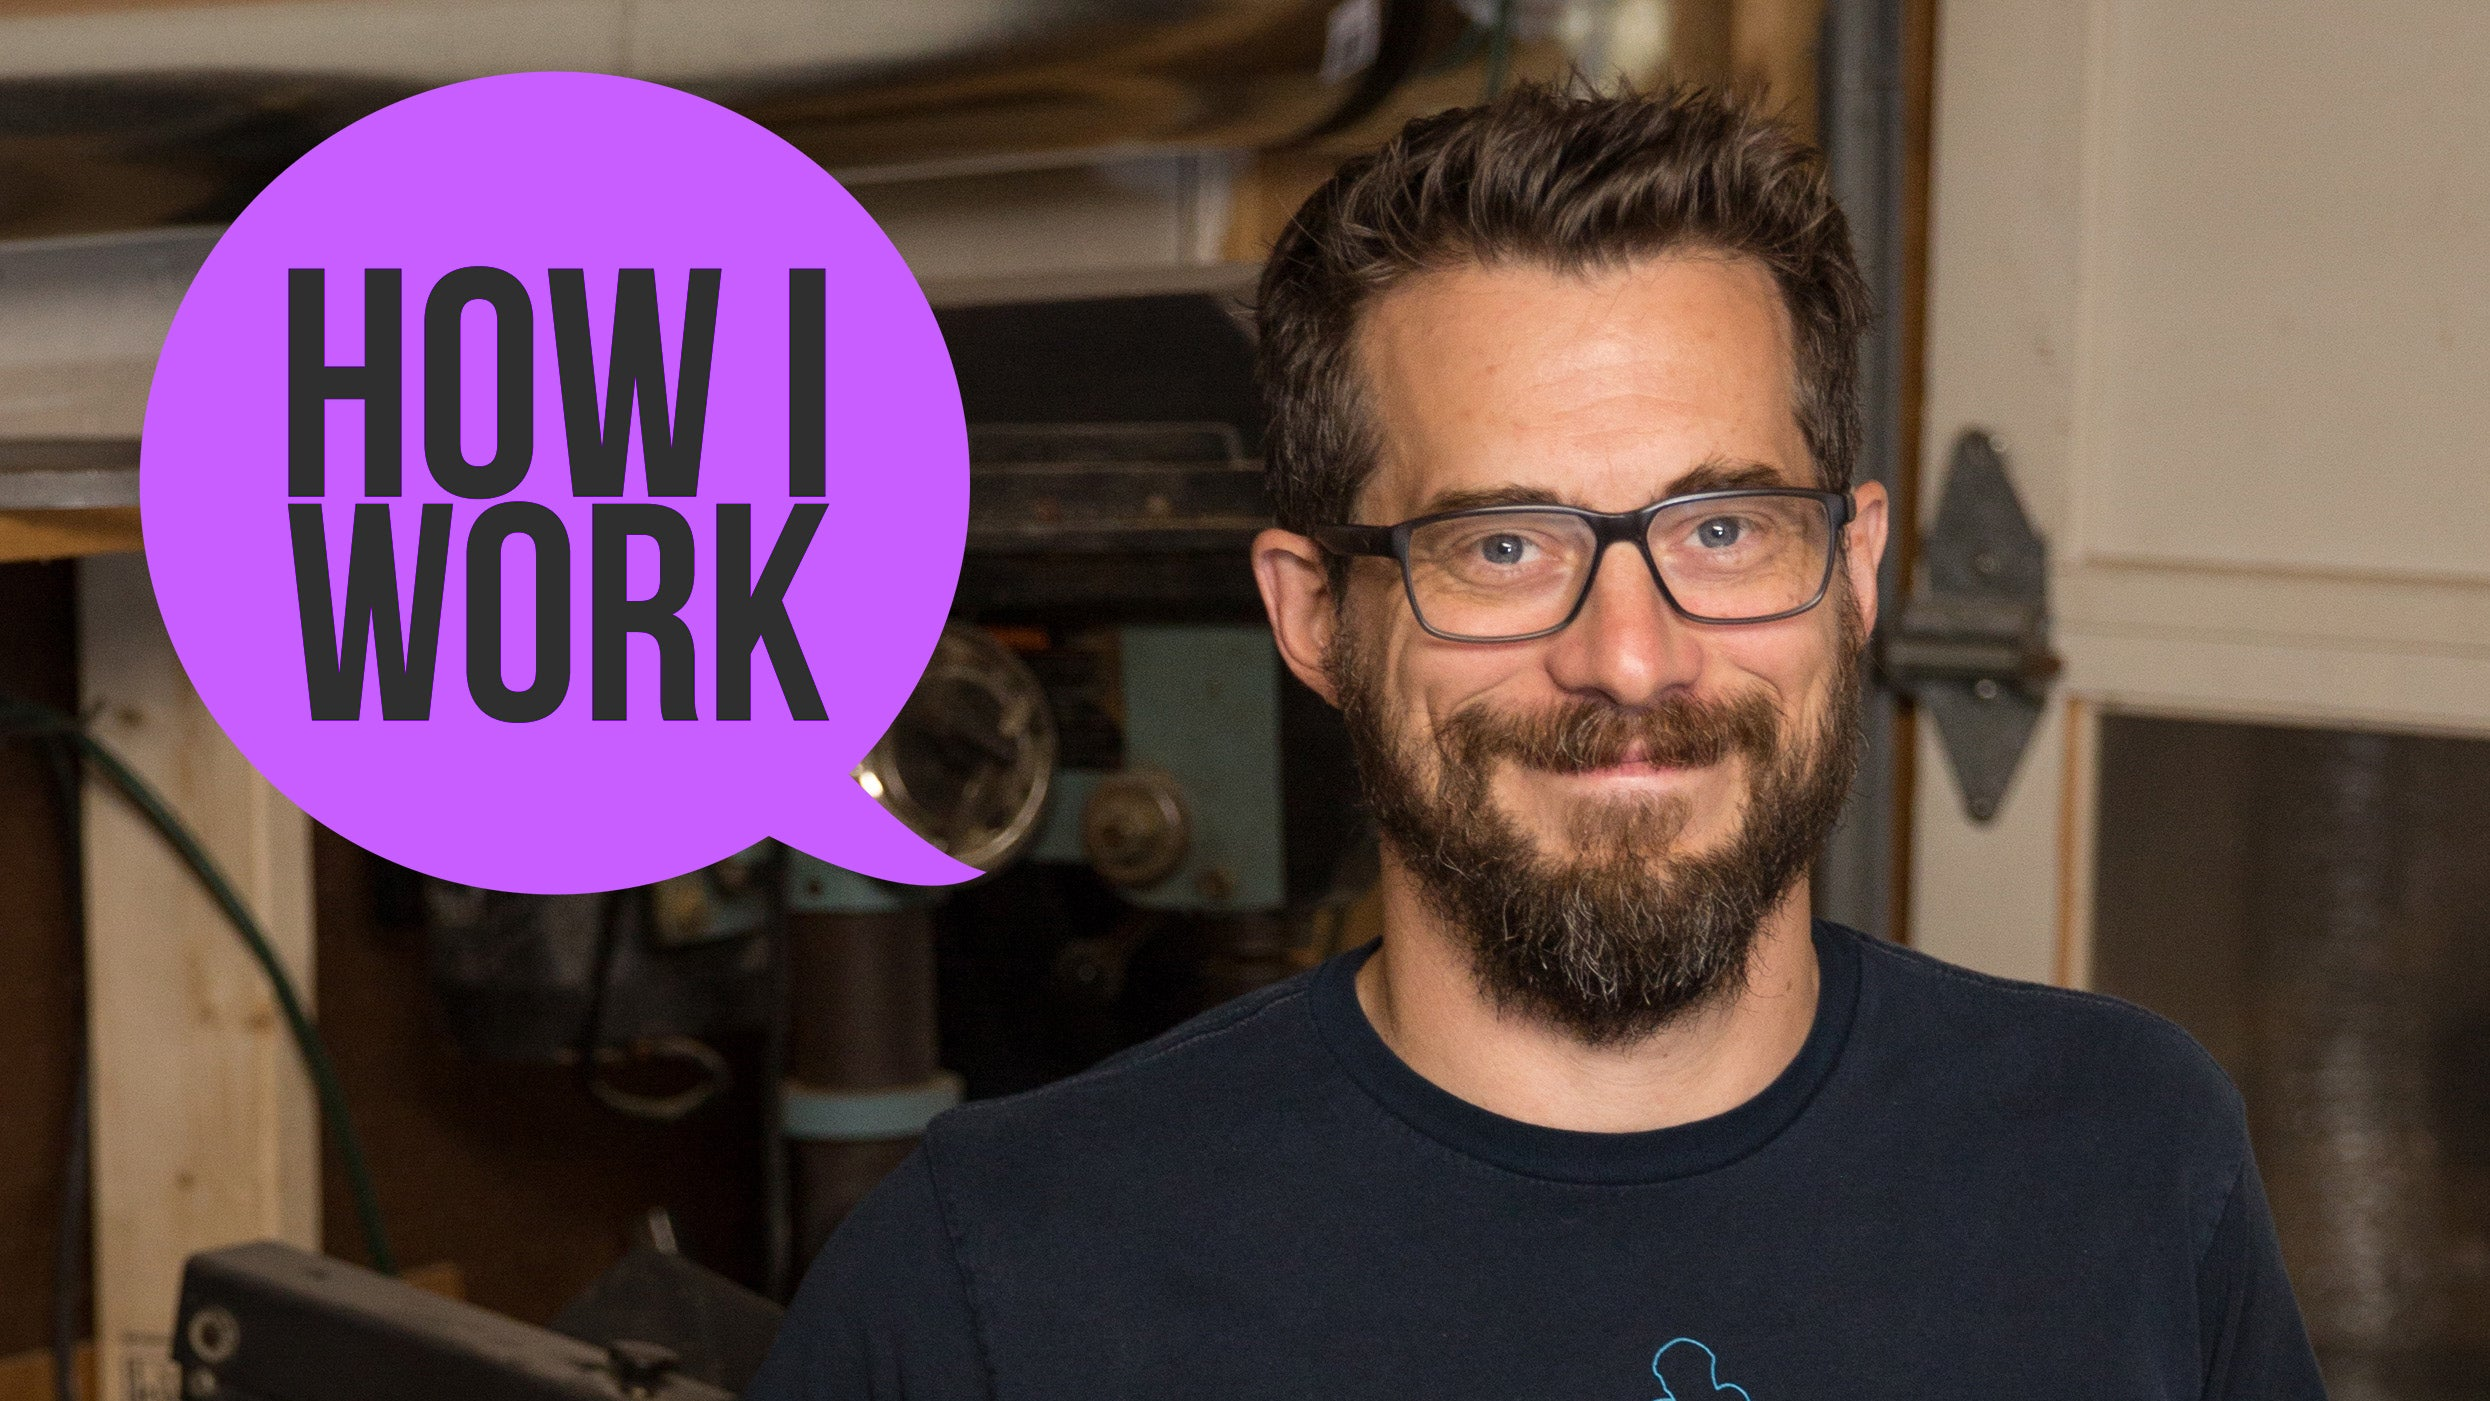 I'm 'I Like To Make Stuff' Host Bob Clagett, And This Is How I Work